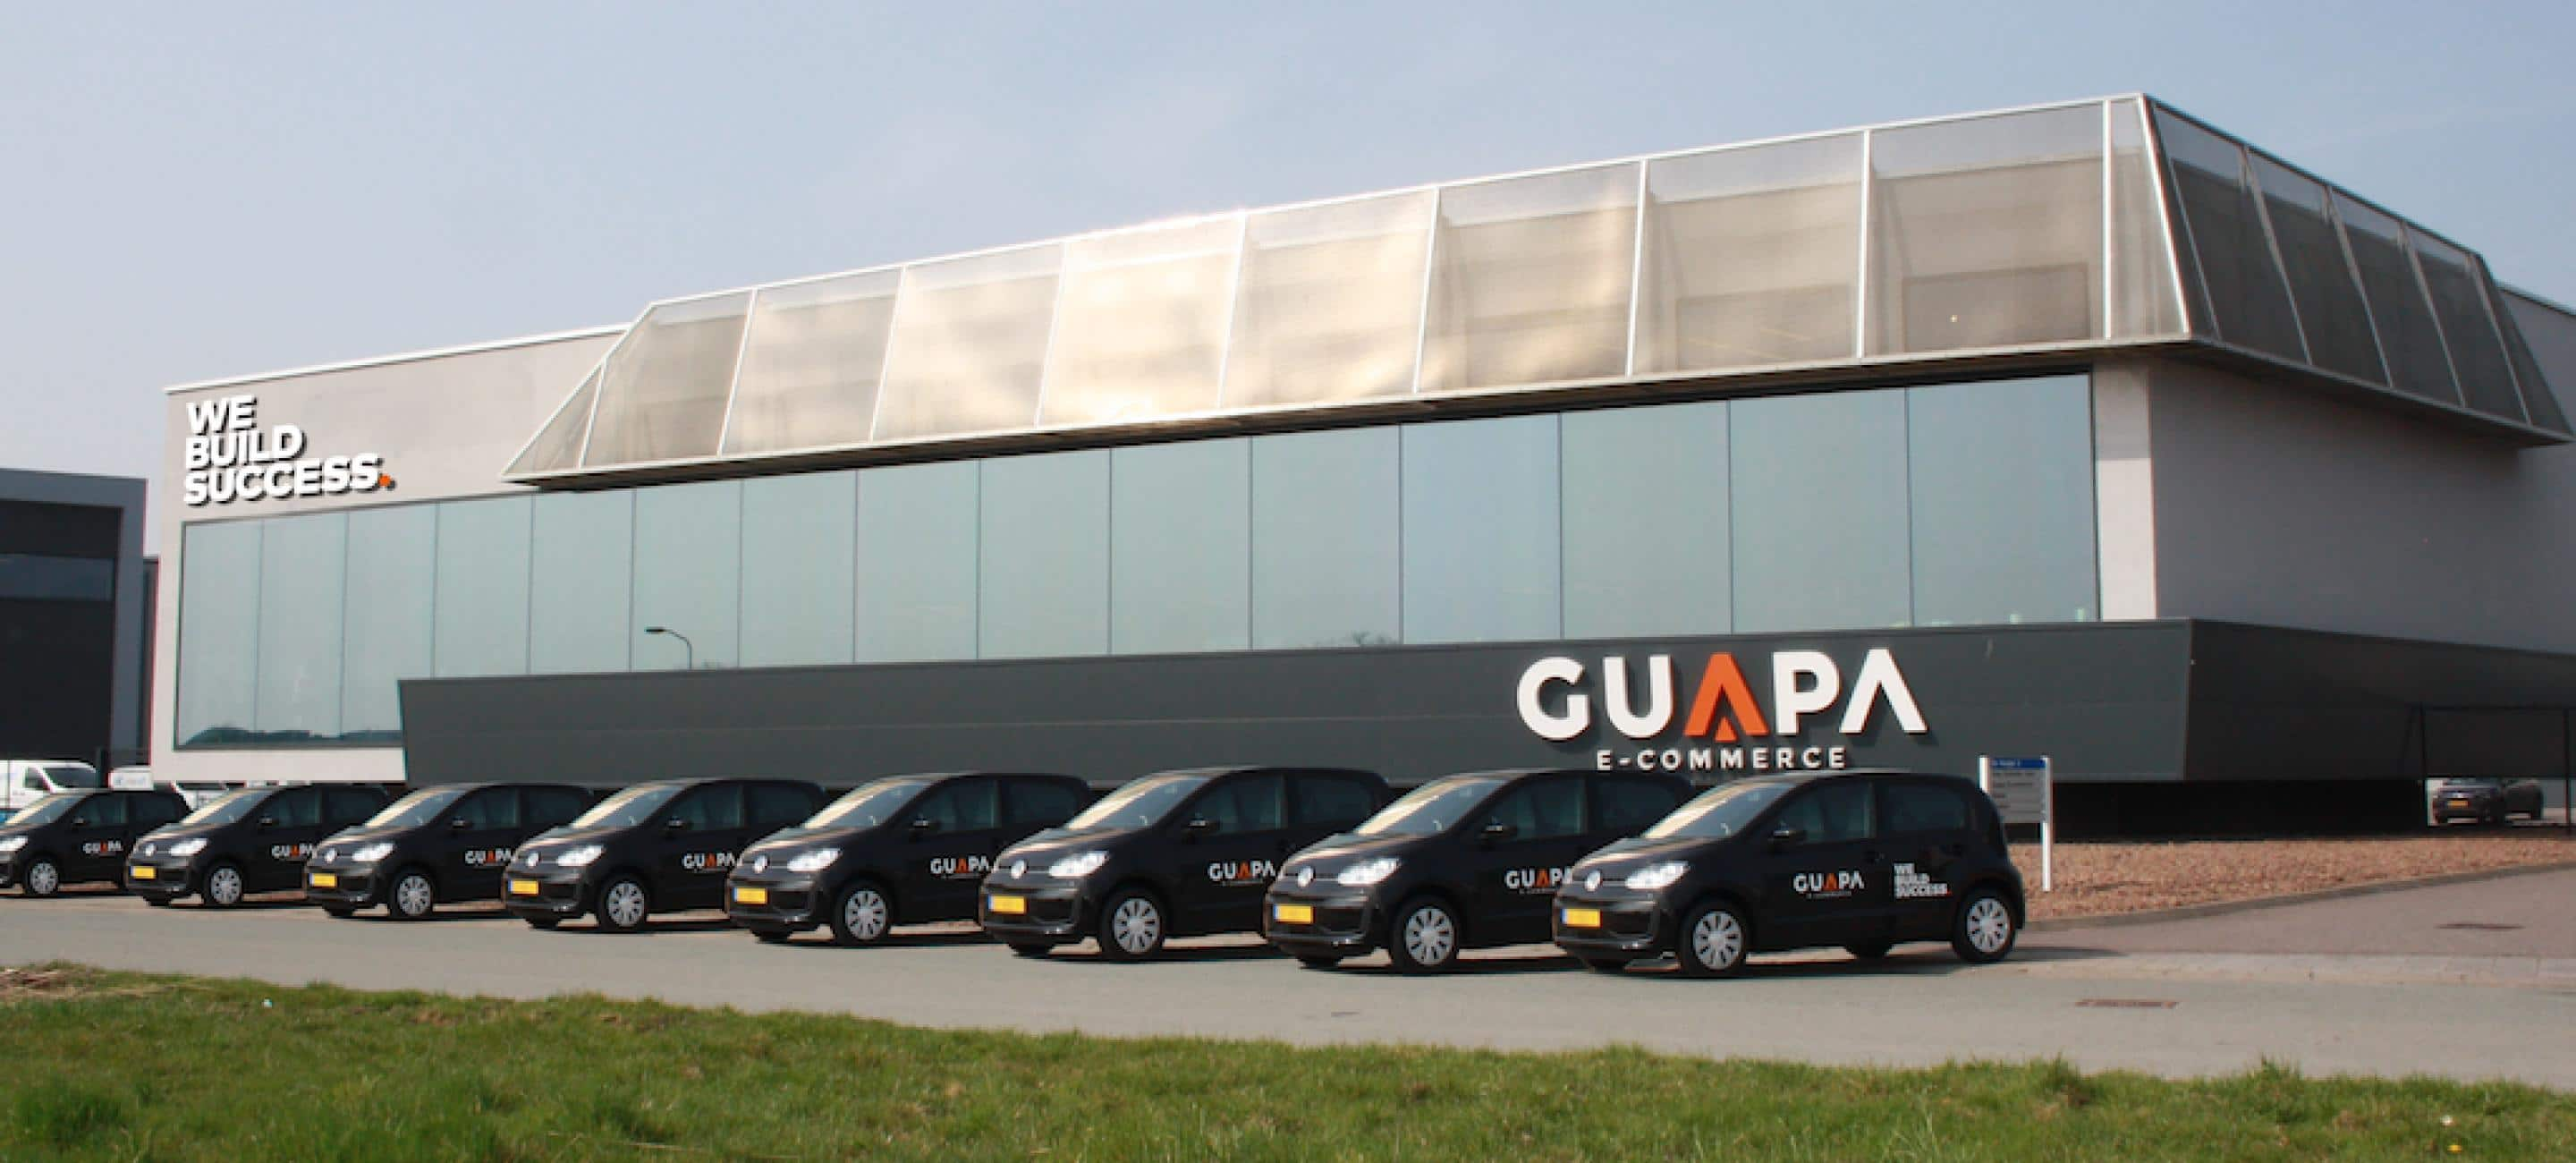 Guapa E-commerce